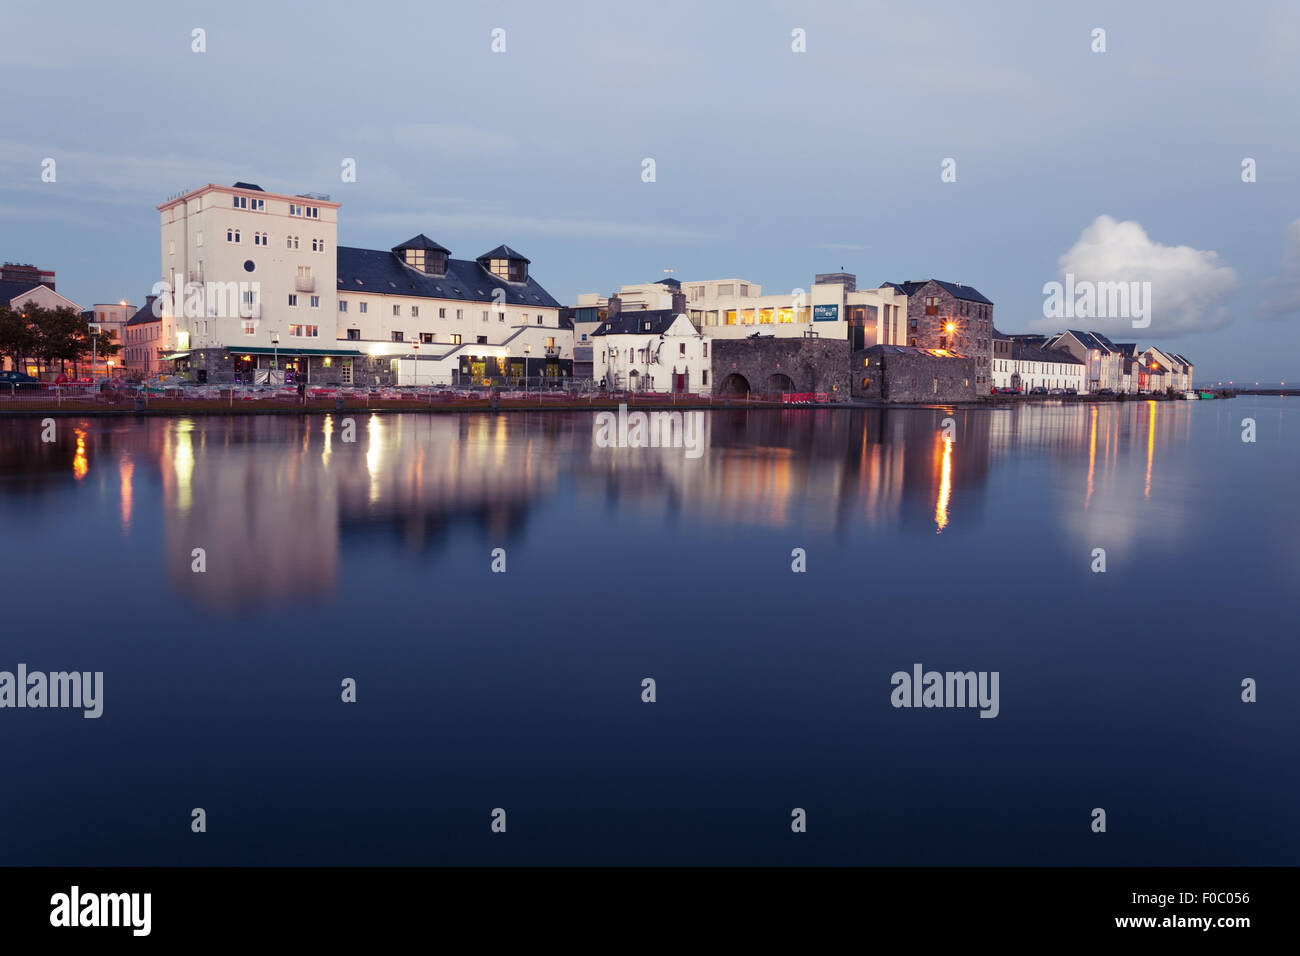 Buildings on the bank of the river during High tide in the city in dusk. Claddach, Galway, Ireland. - Stock Image